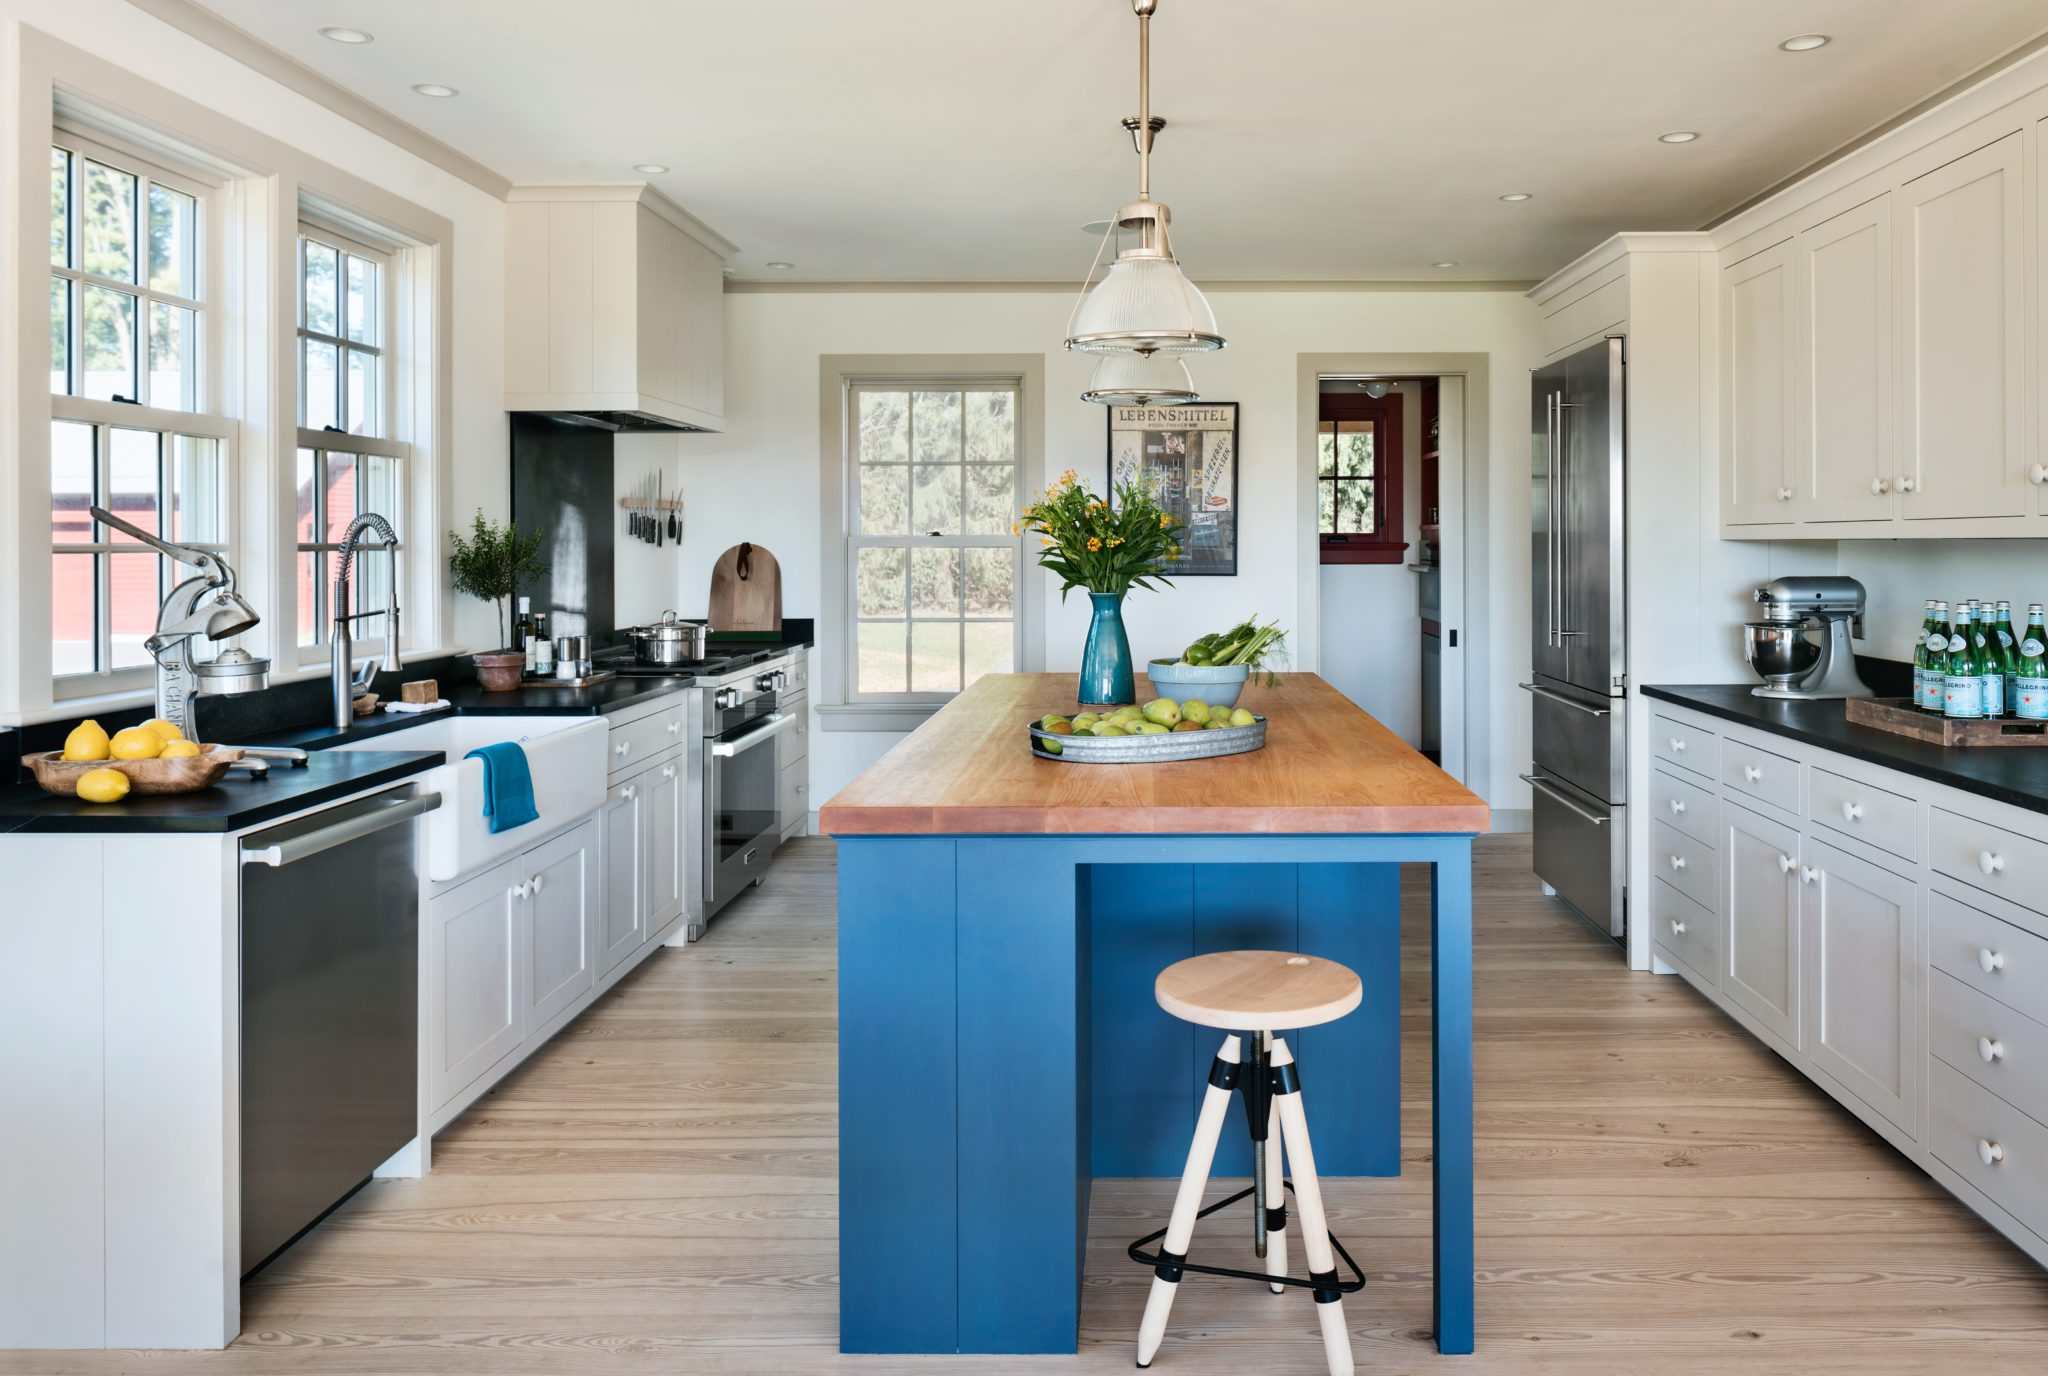 25 Kitchens With Butcher Block Islands Chairish Blog